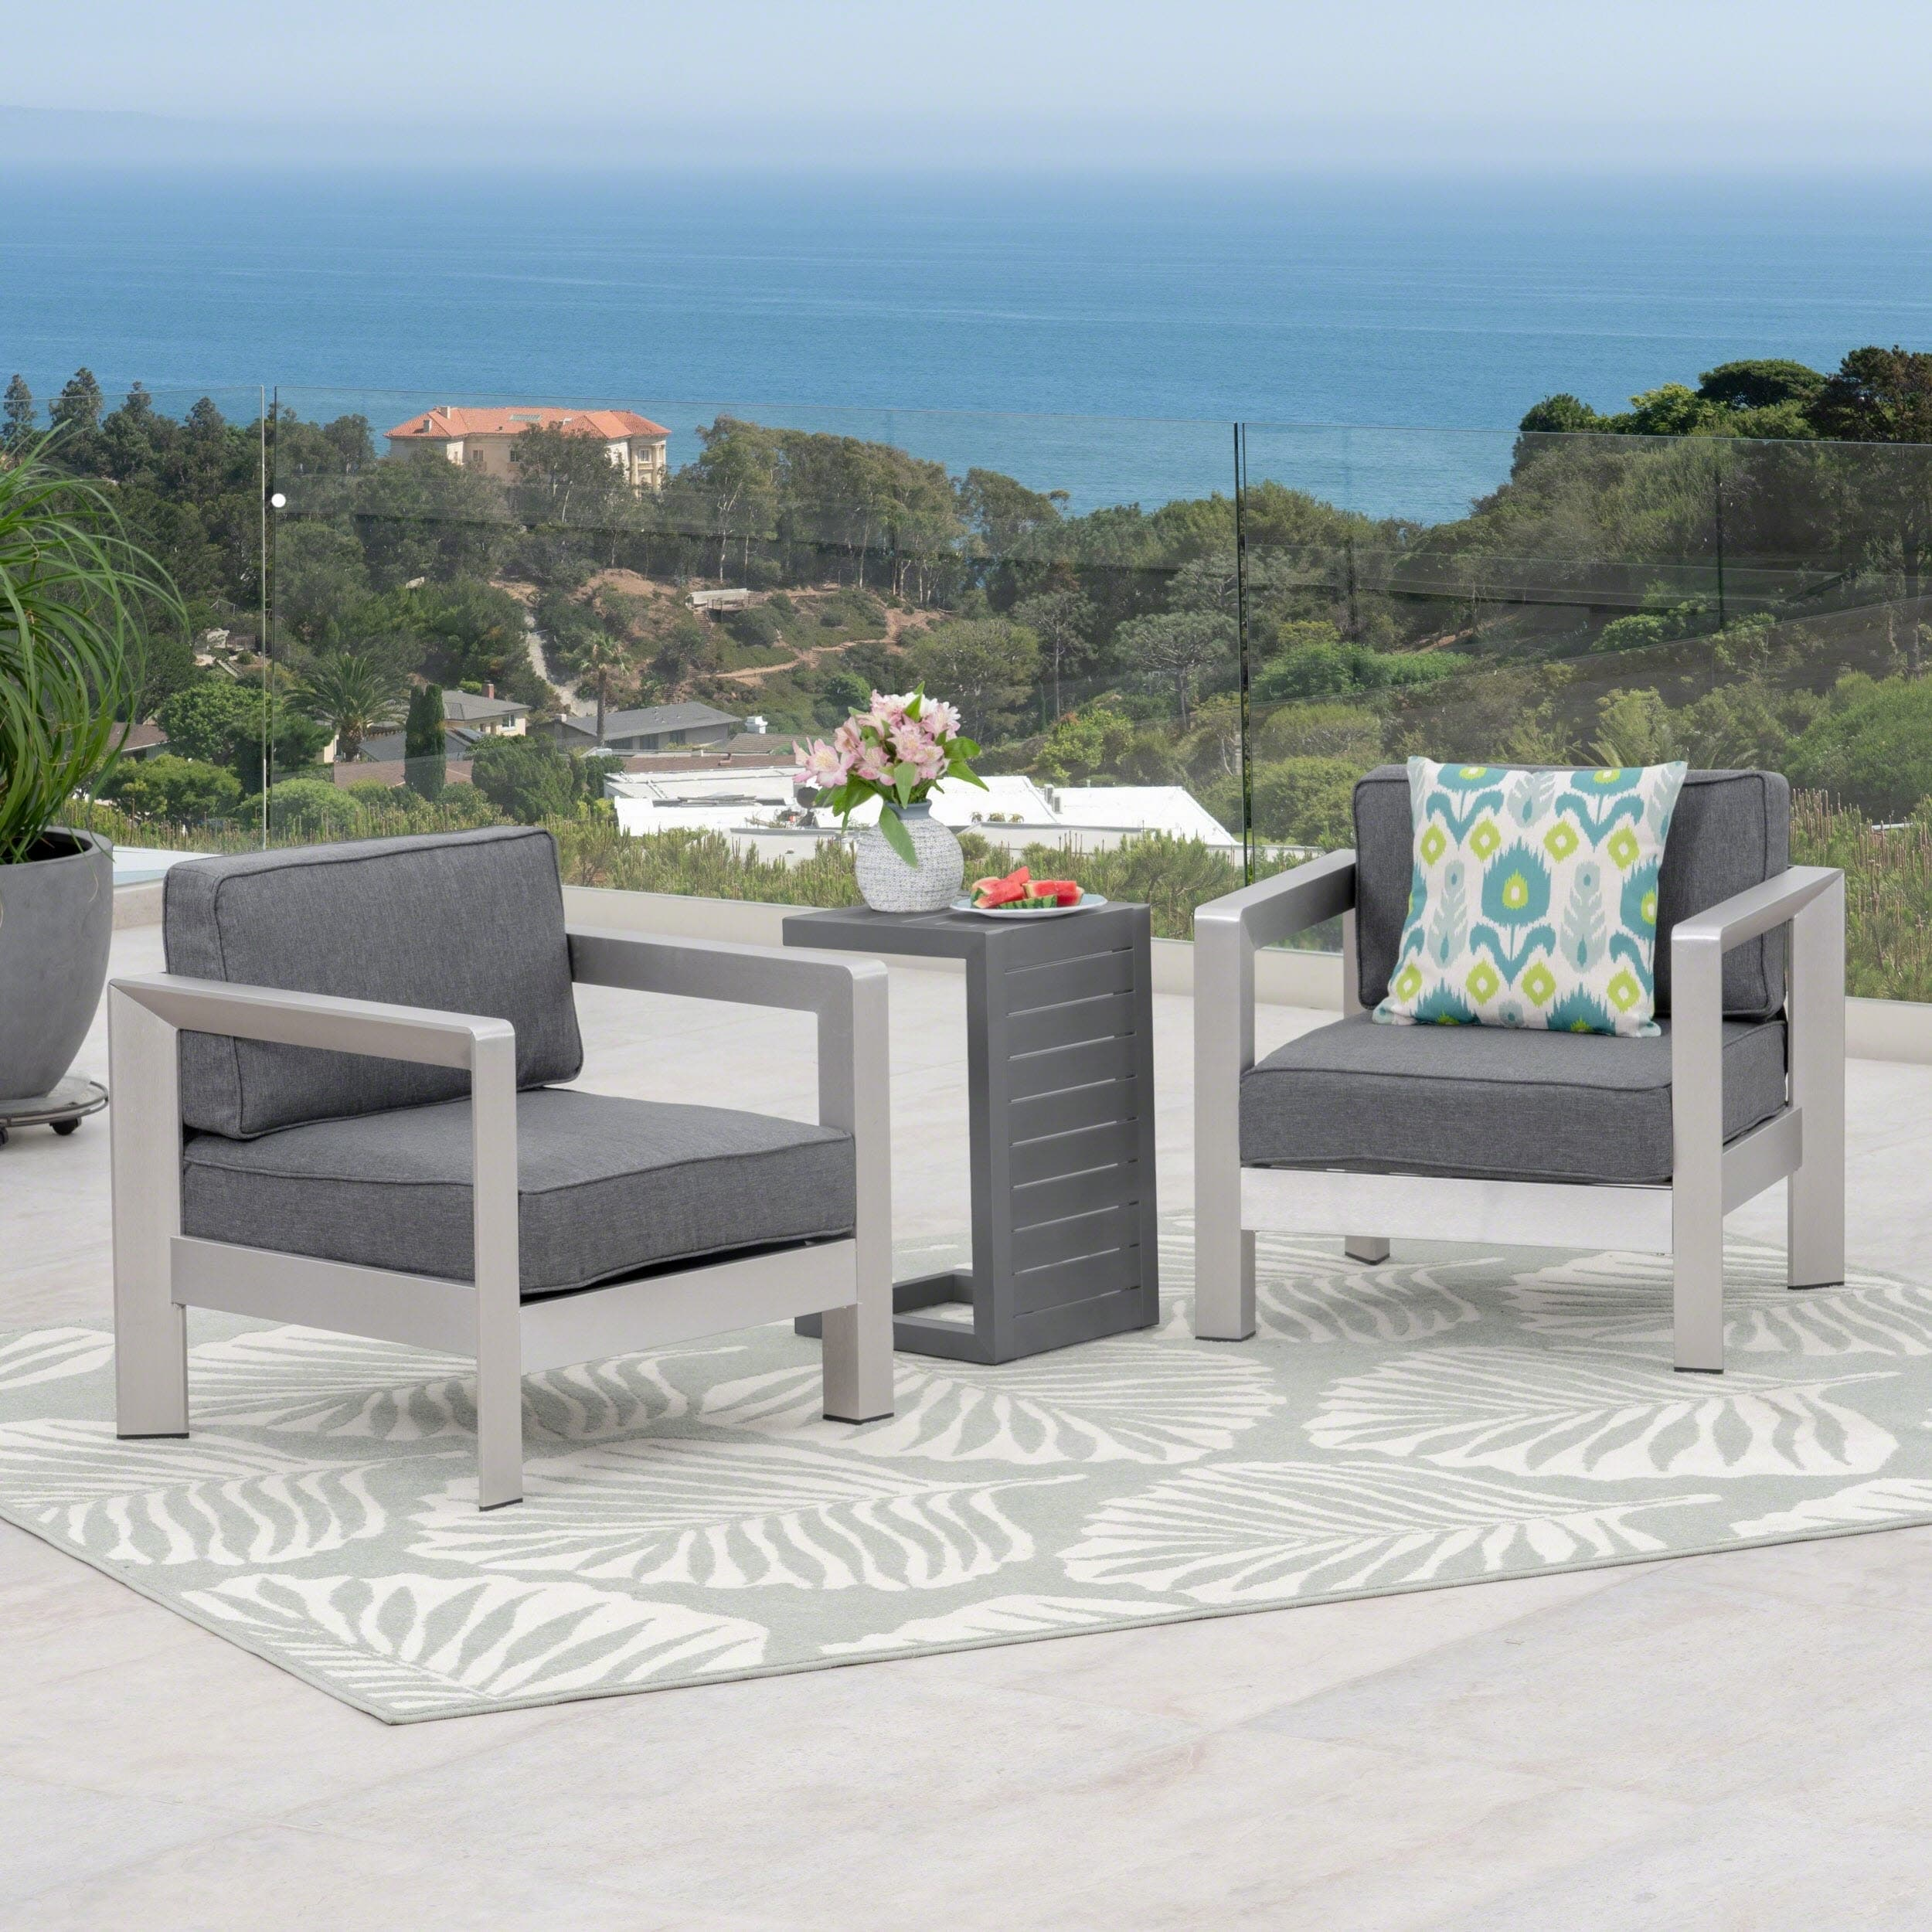 Christopher Knight Home Aviara Outdoor Aluminum Club Chairs with Side Table by